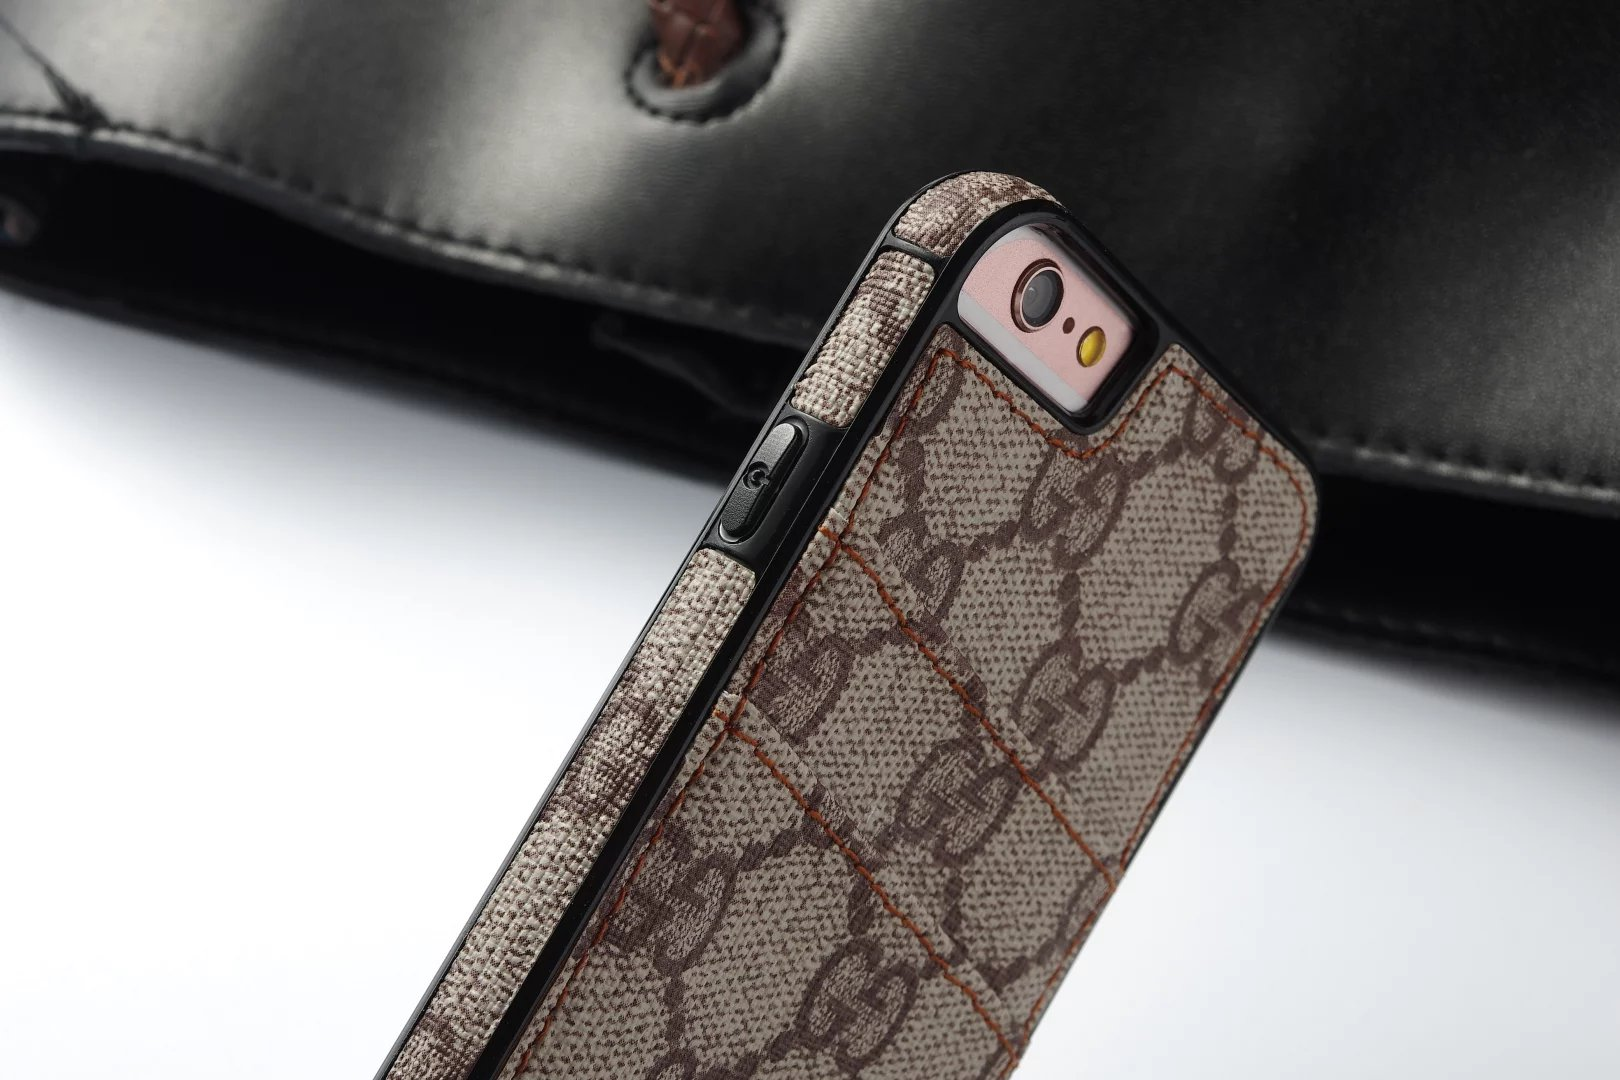 iphone case selbst gestalten günstig beste iphone hülle Louis Vuitton iphone6 plus hülle filztasche iphone 6 Plus wann erscheint neues iphone handy cover gestalten personalisierte iphone hülle iphone 6 Plus cover 6lbst gestalten silikonhülle iphone